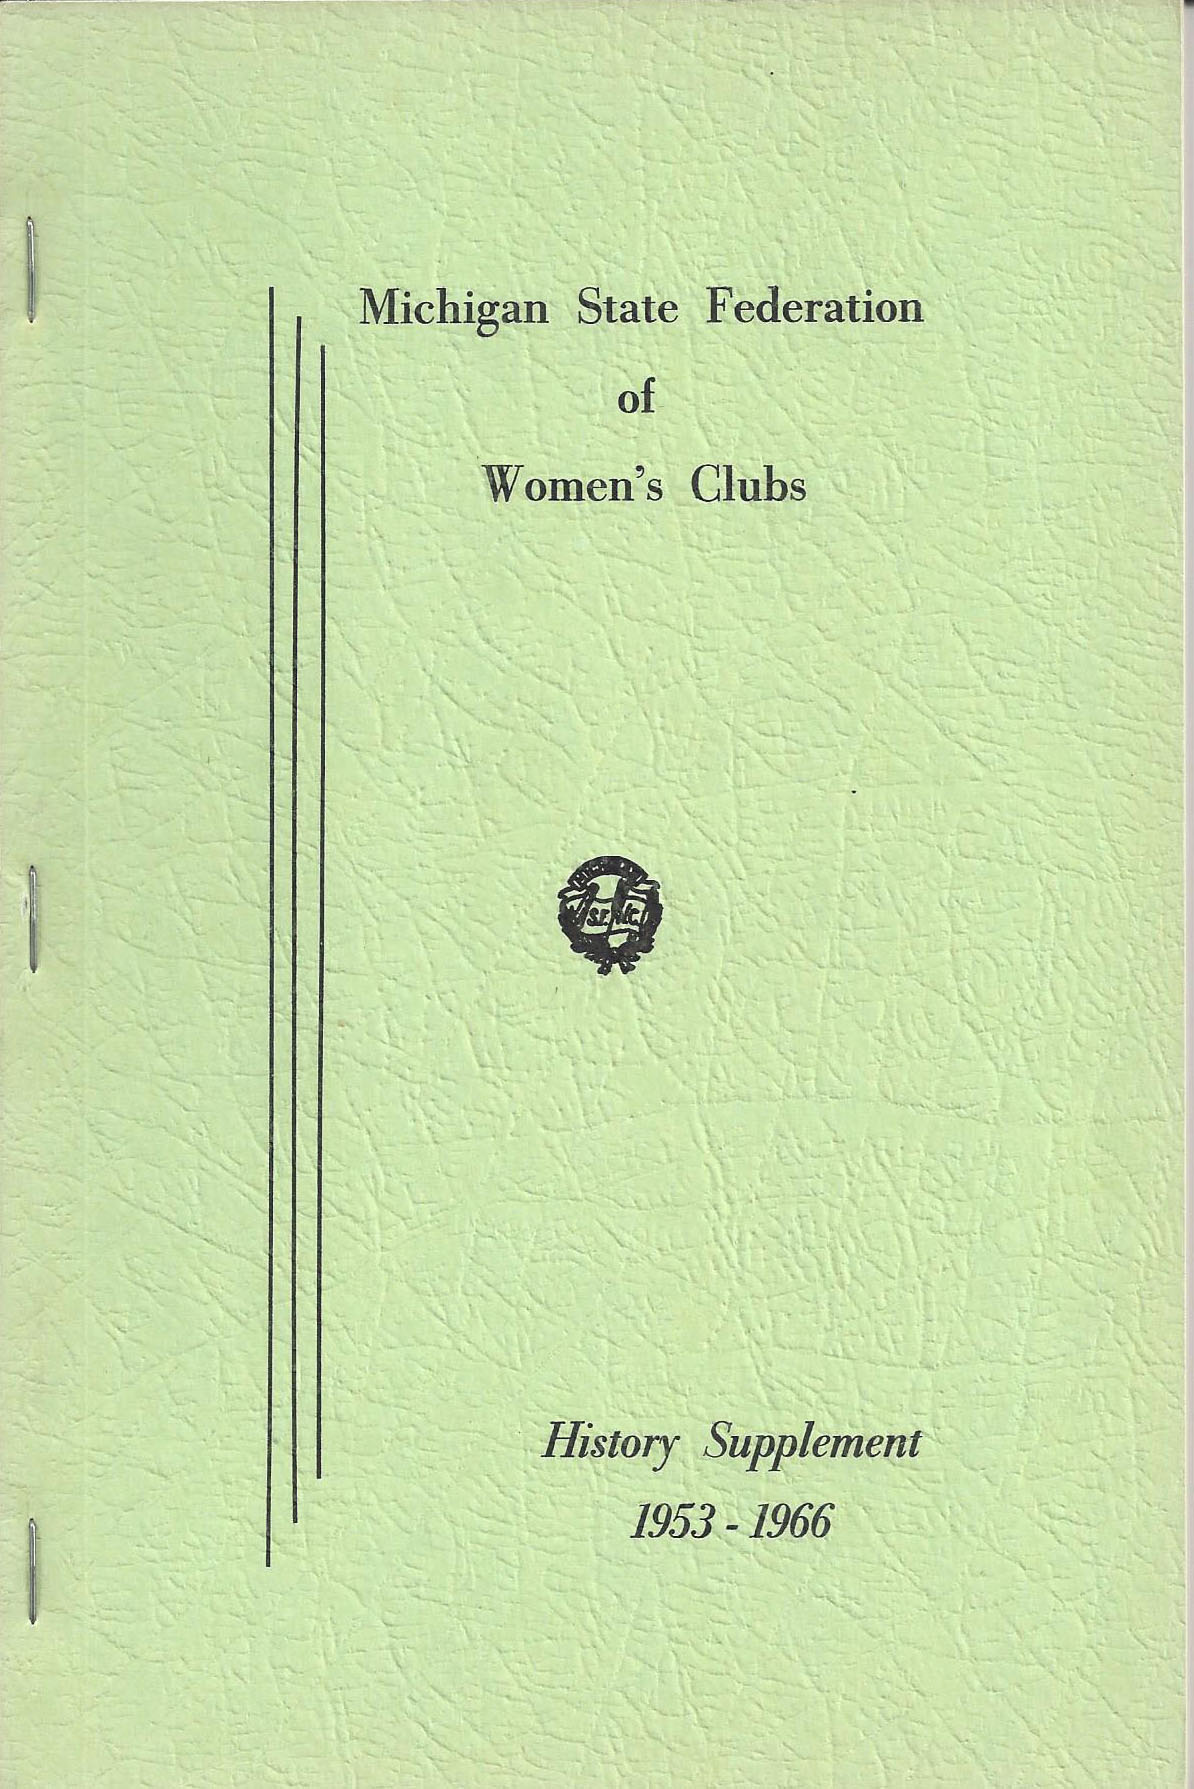 WGFC MI History Supplement 1953-1966